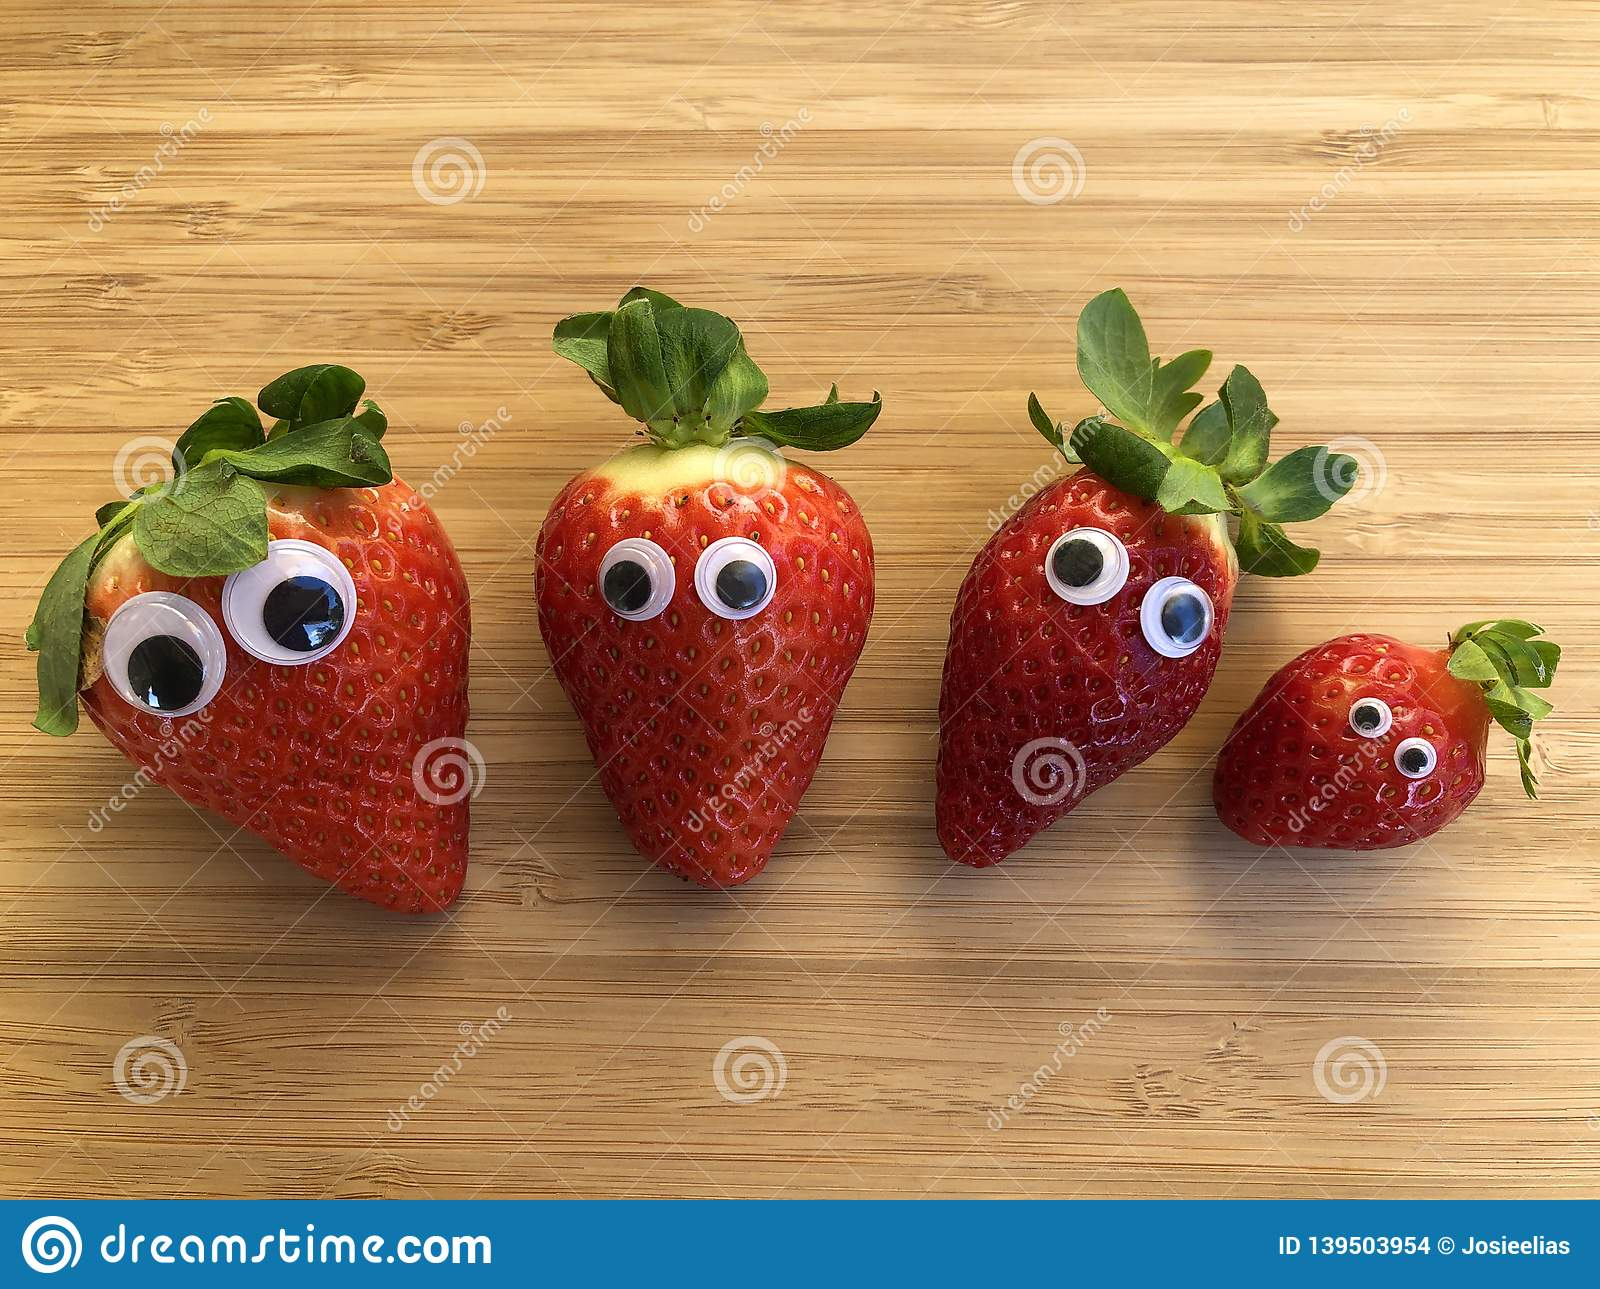 Four fresh red strawberries with googly eyes